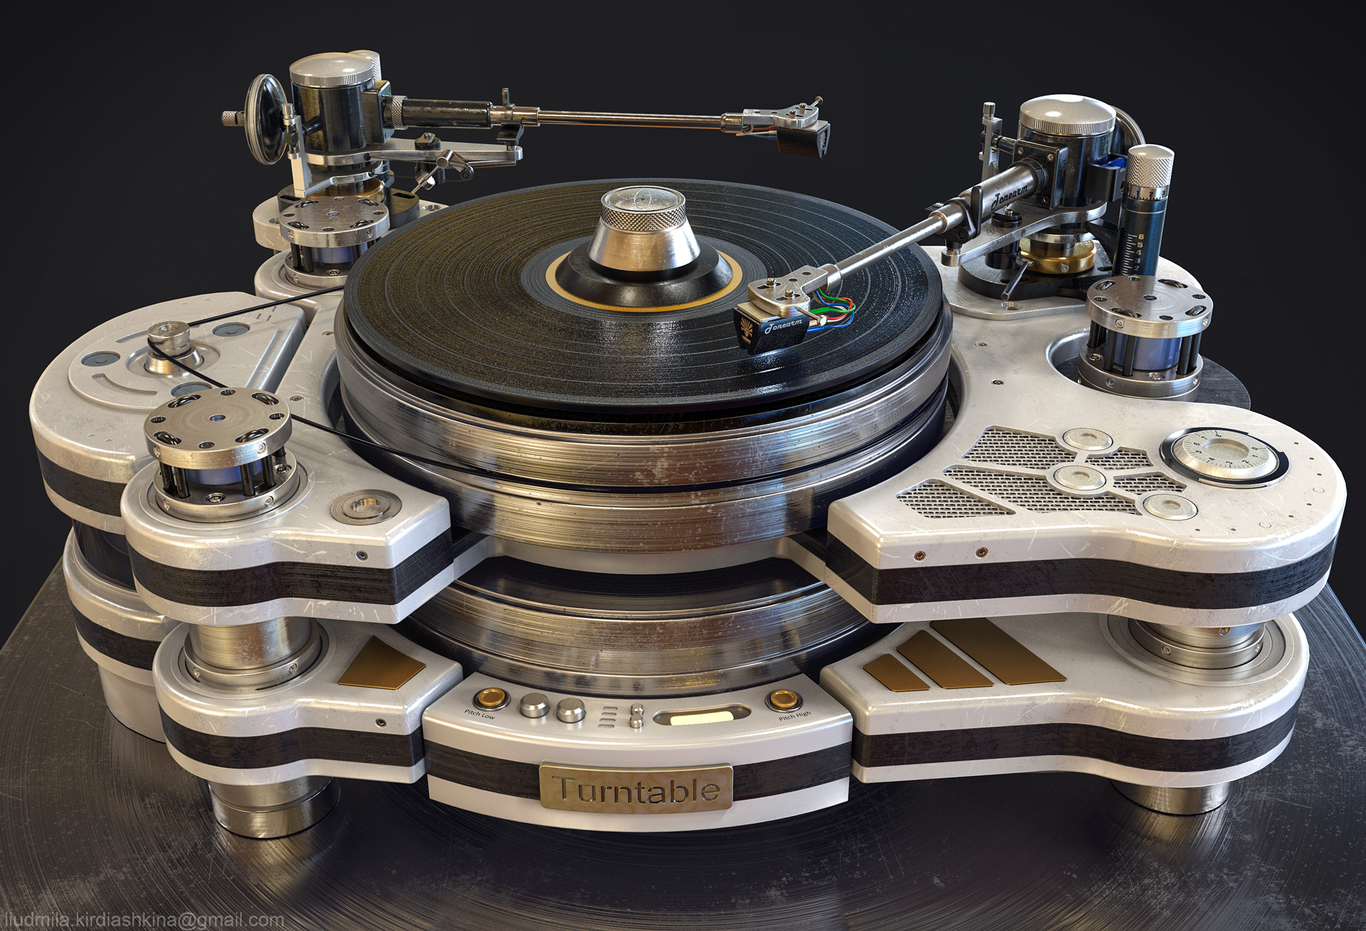 Turntable, part 2